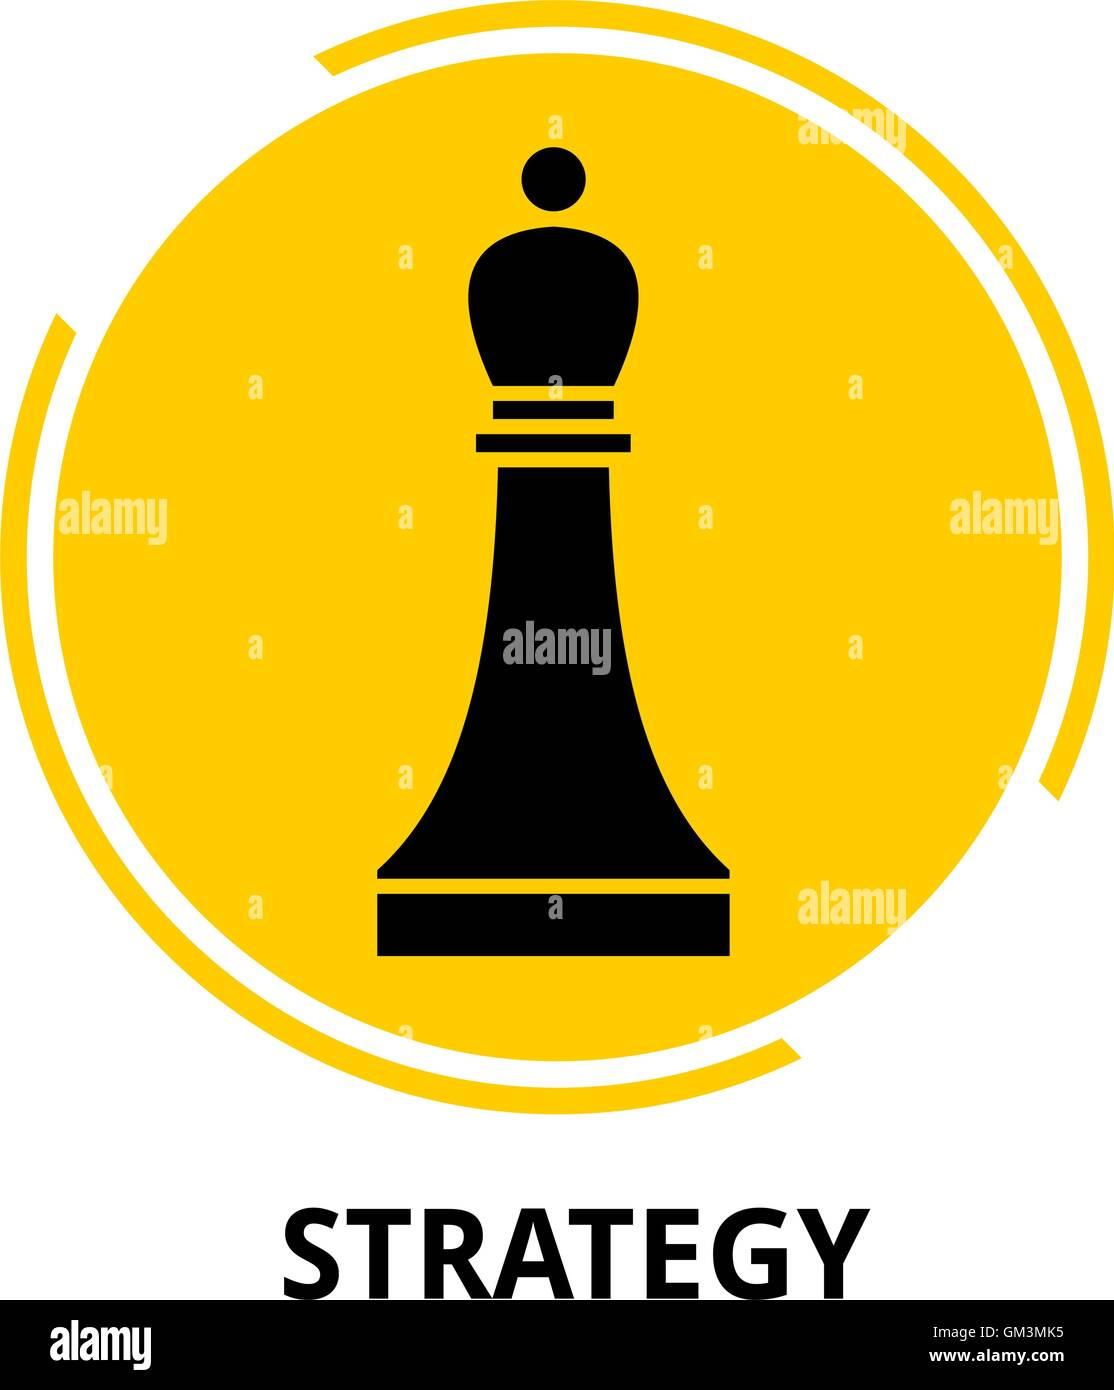 vector - strategy - Stock Image